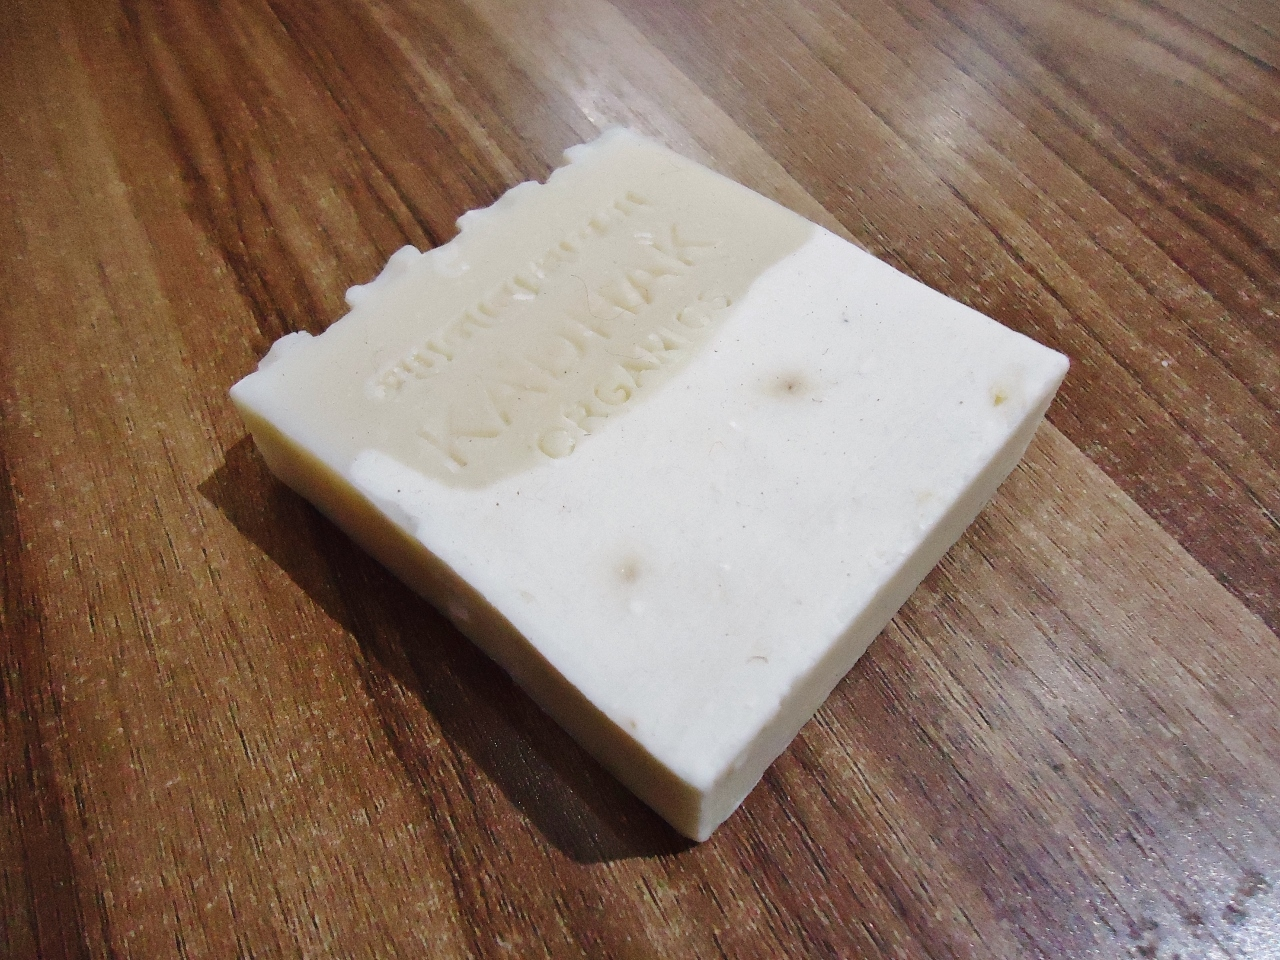 <p>Kadhak Honey and Yak Butter Soap</p>